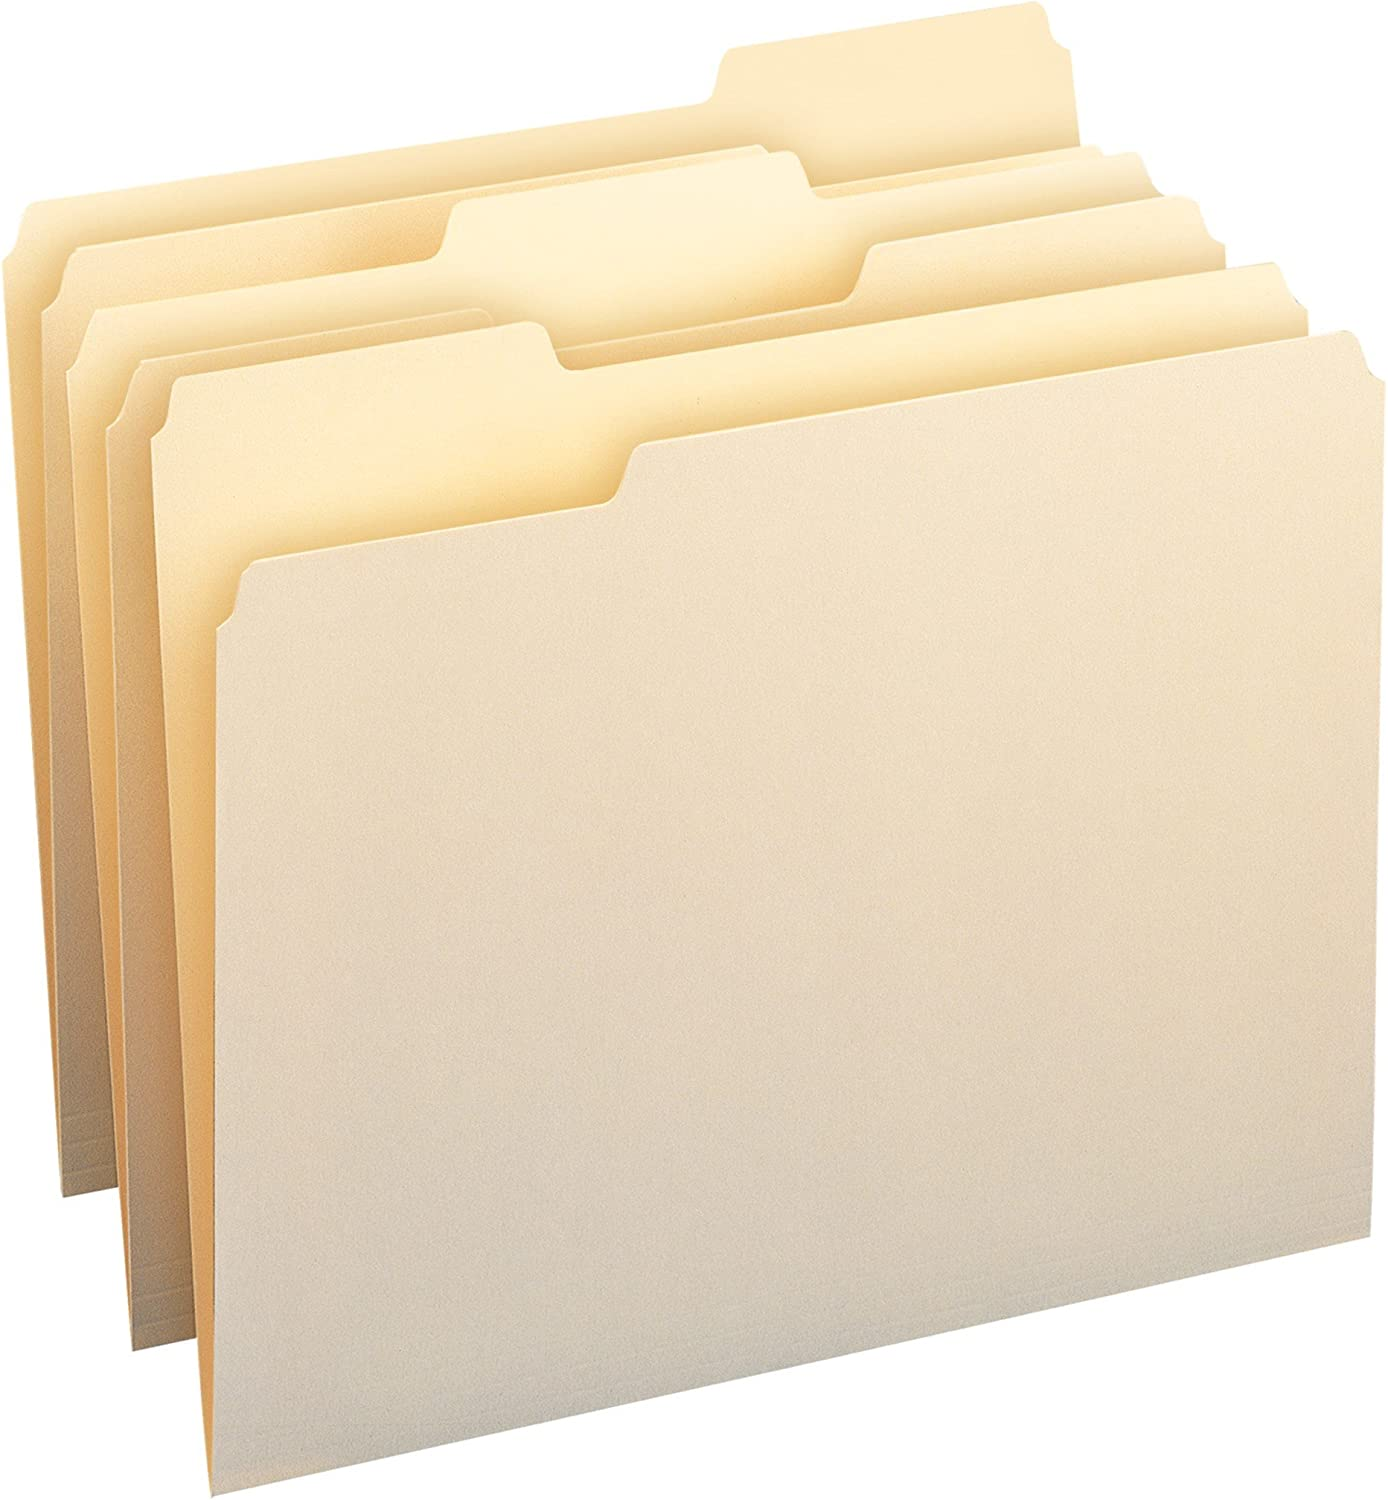 Smead File Folder, 1/3-Cut Tab, Assorted Position, Letter Size, Manila, 24 Per Pack (11928)